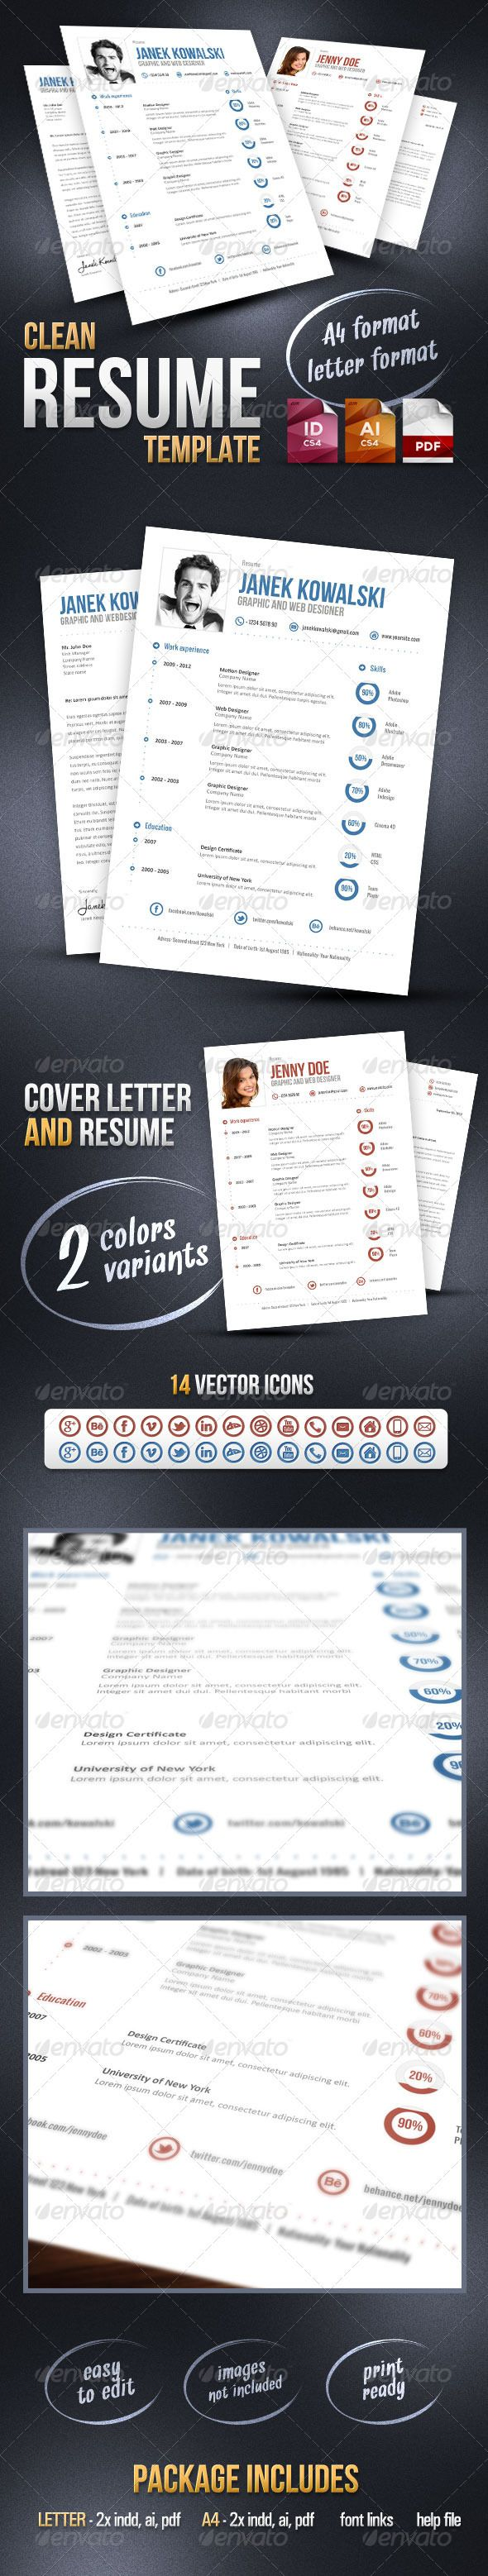 105 Best Job Hunt Images On Pinterest Interview School And Business